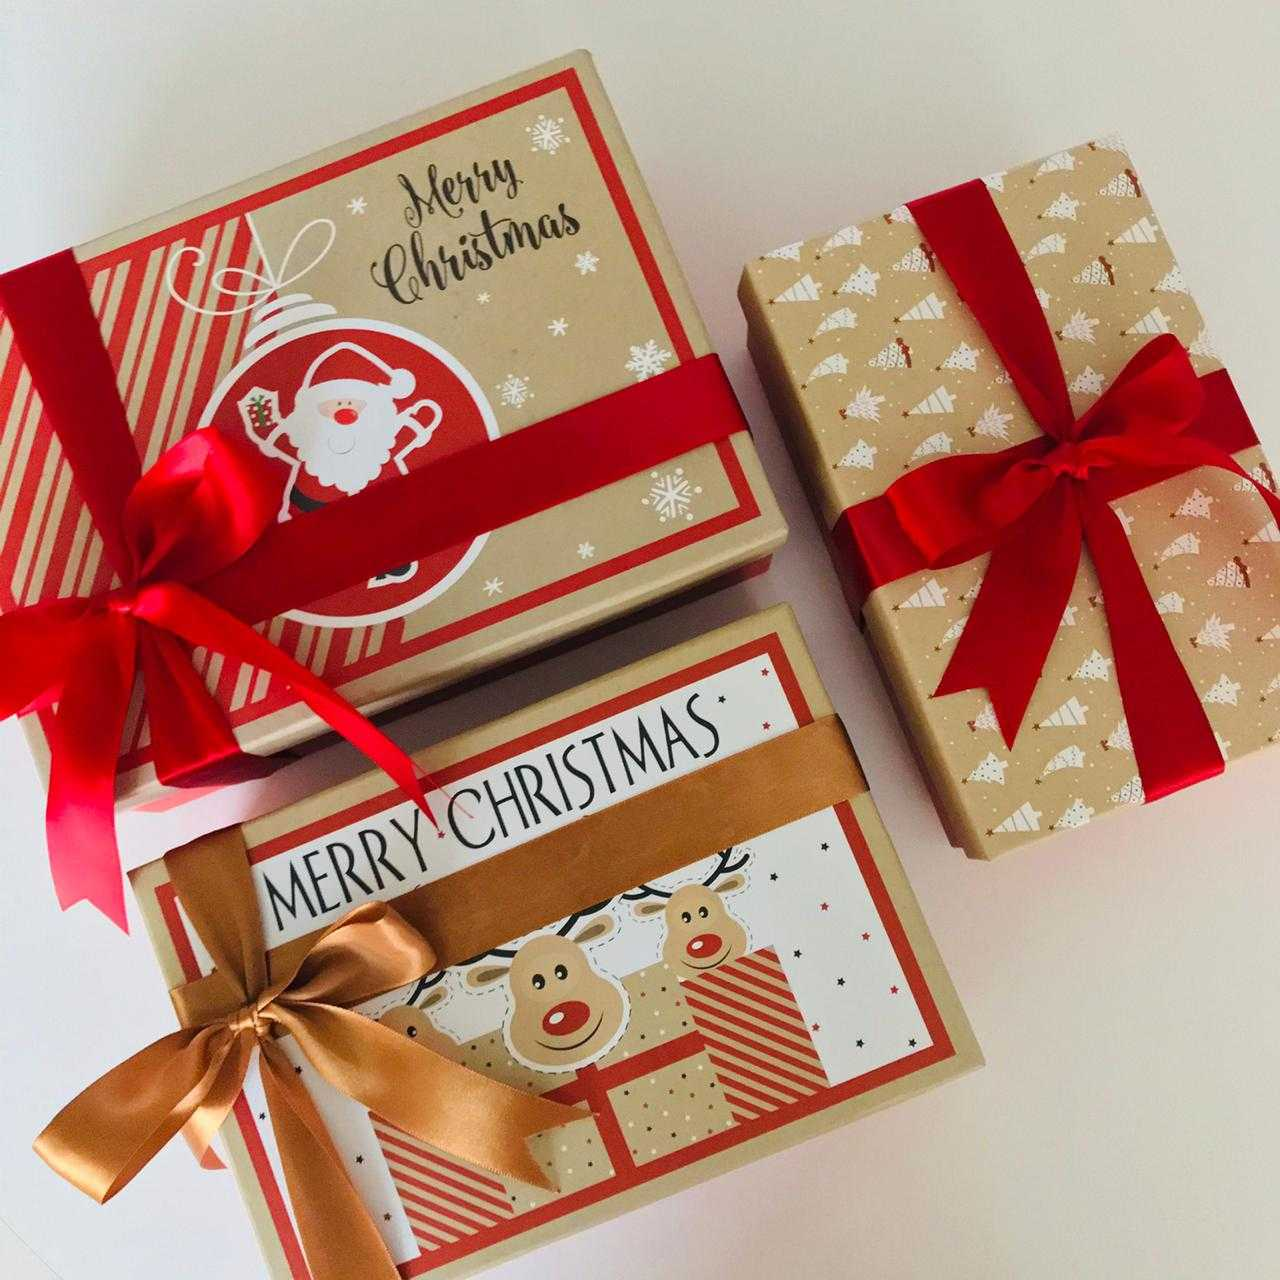 Christmas Hampers's Product catelog